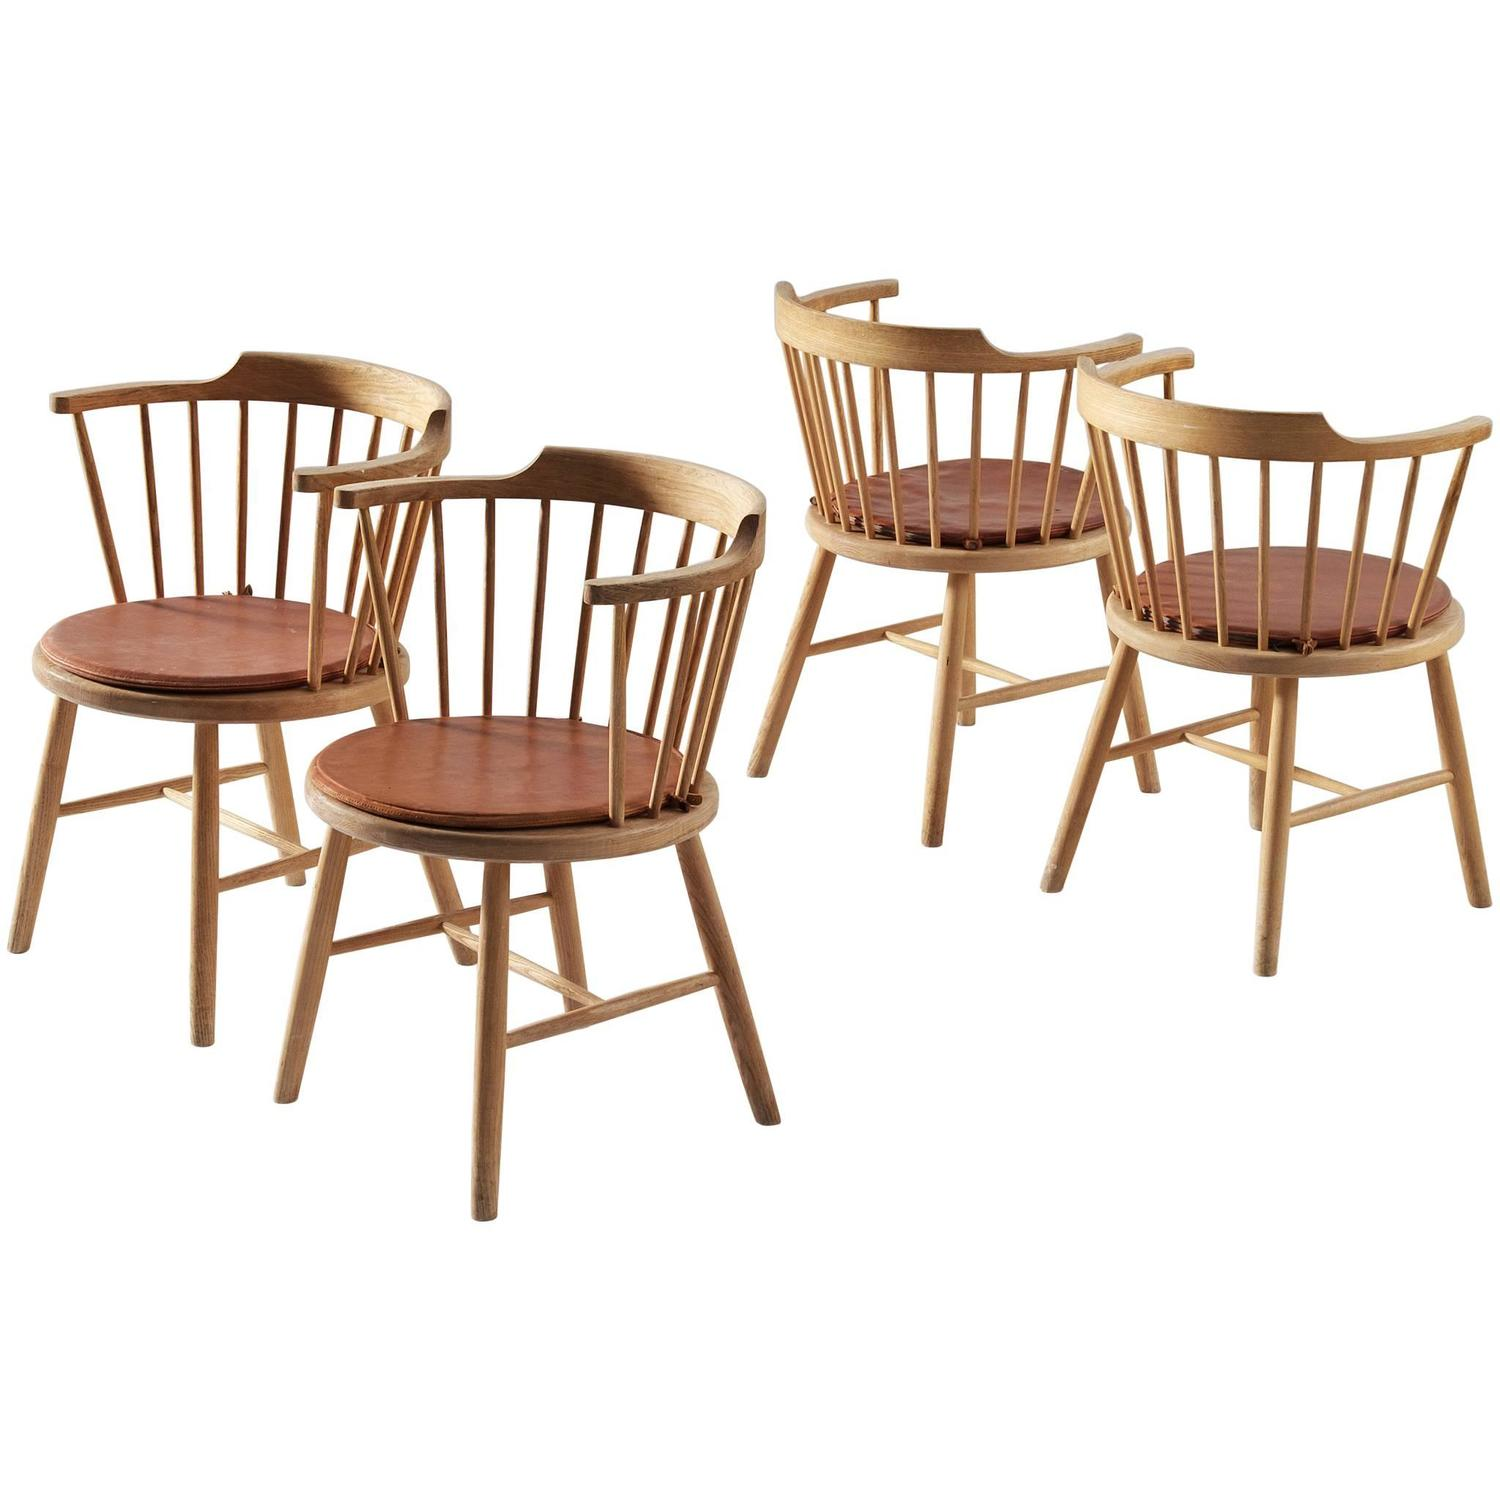 b rge mogensen set of four dining chairs for sale at 1stdibs